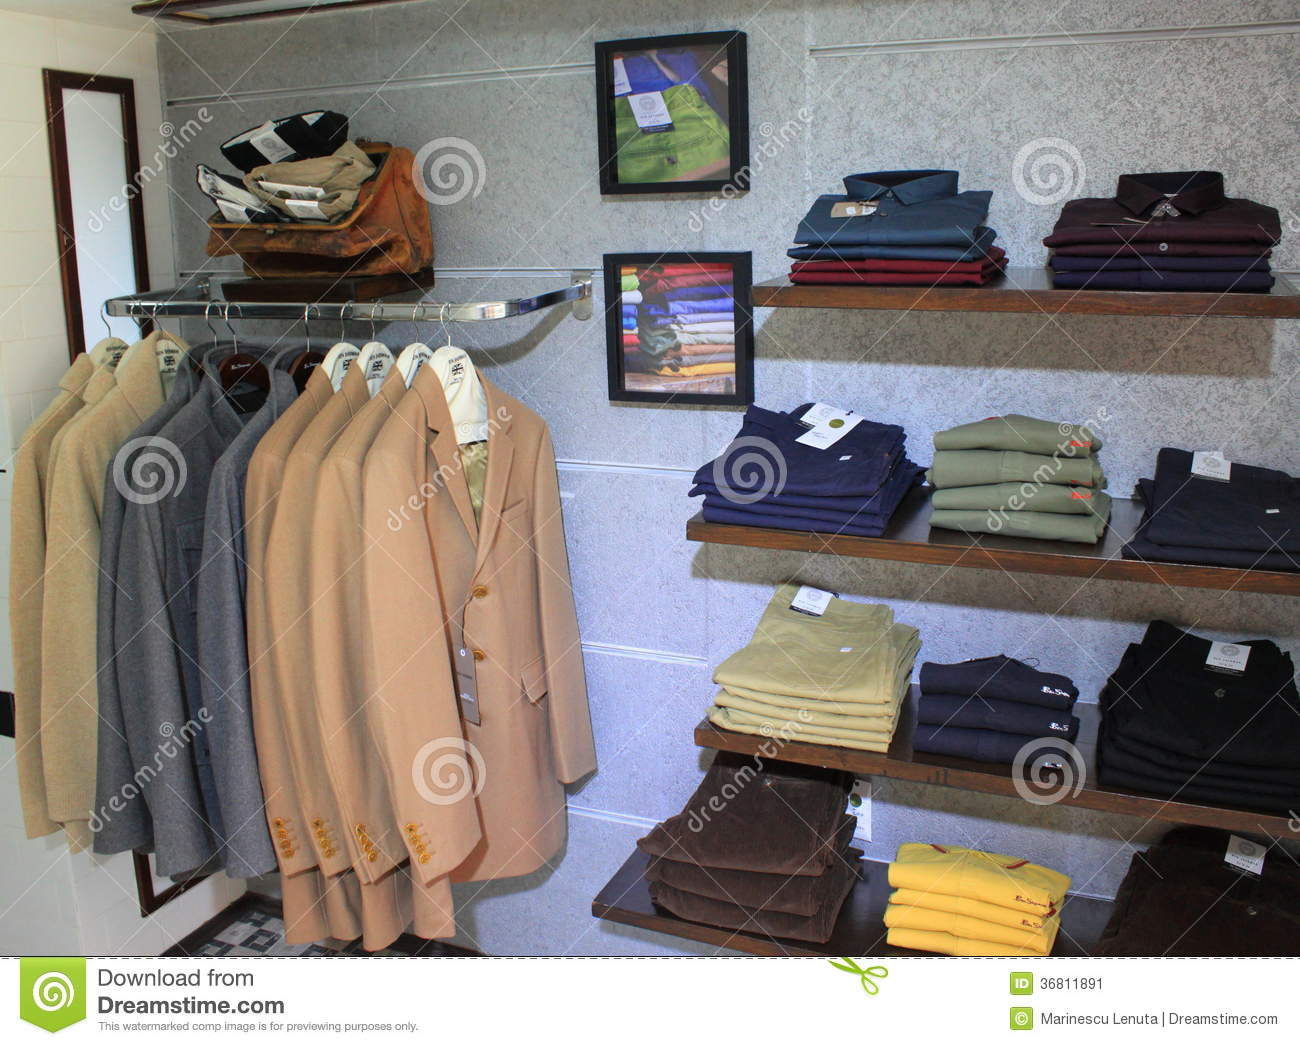 Outfit outlet clothing store